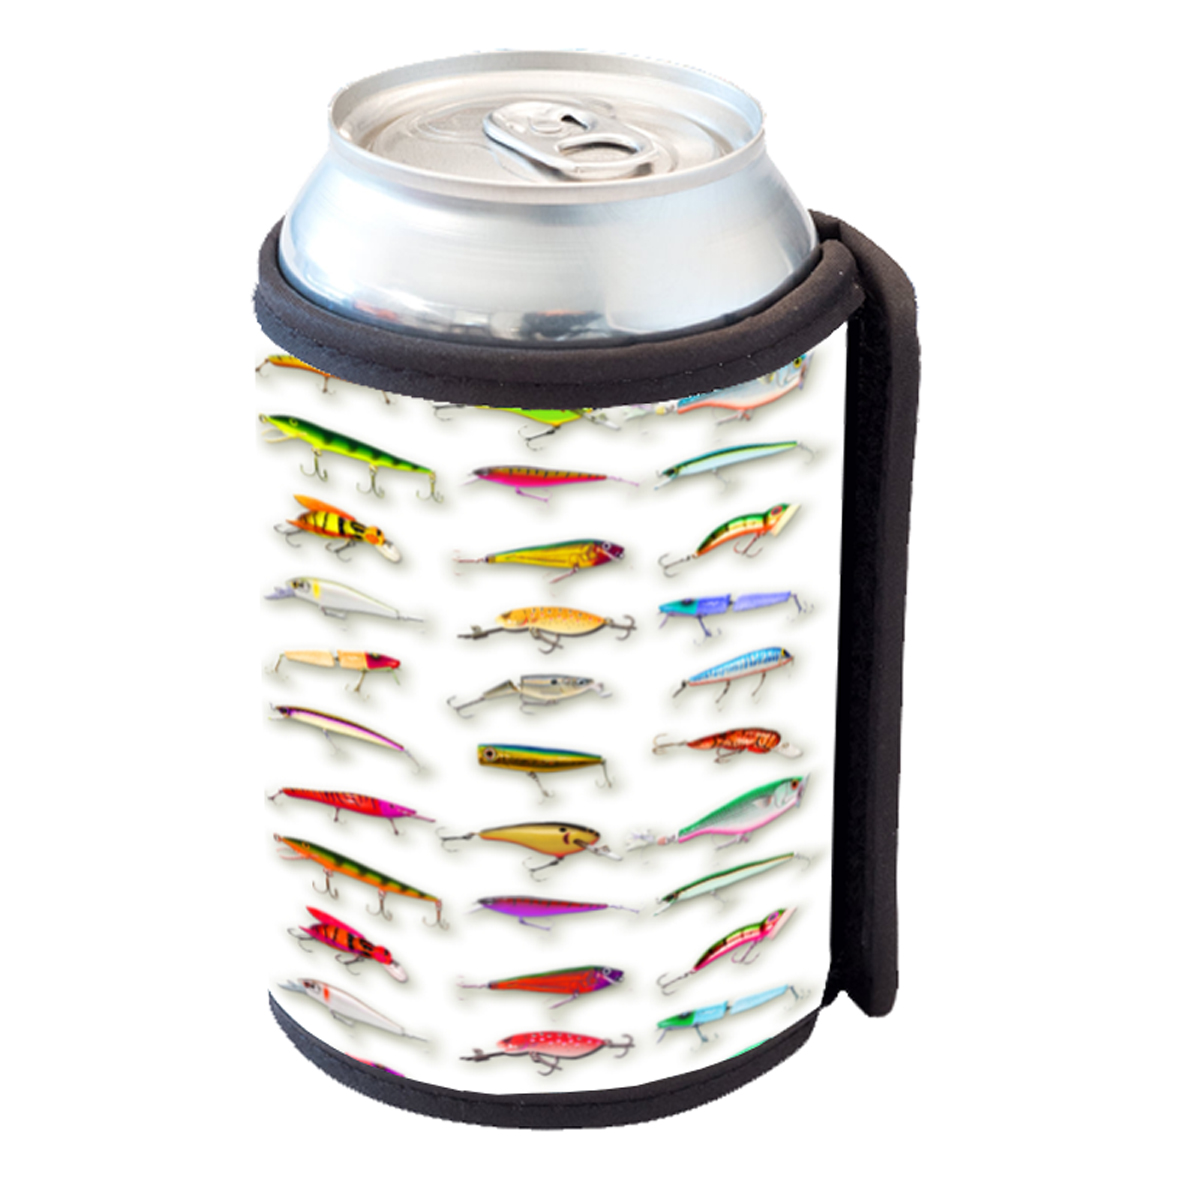 KuzmarK Insulated Drink Can Cooler Hugger - Many Fishing Lure Lures